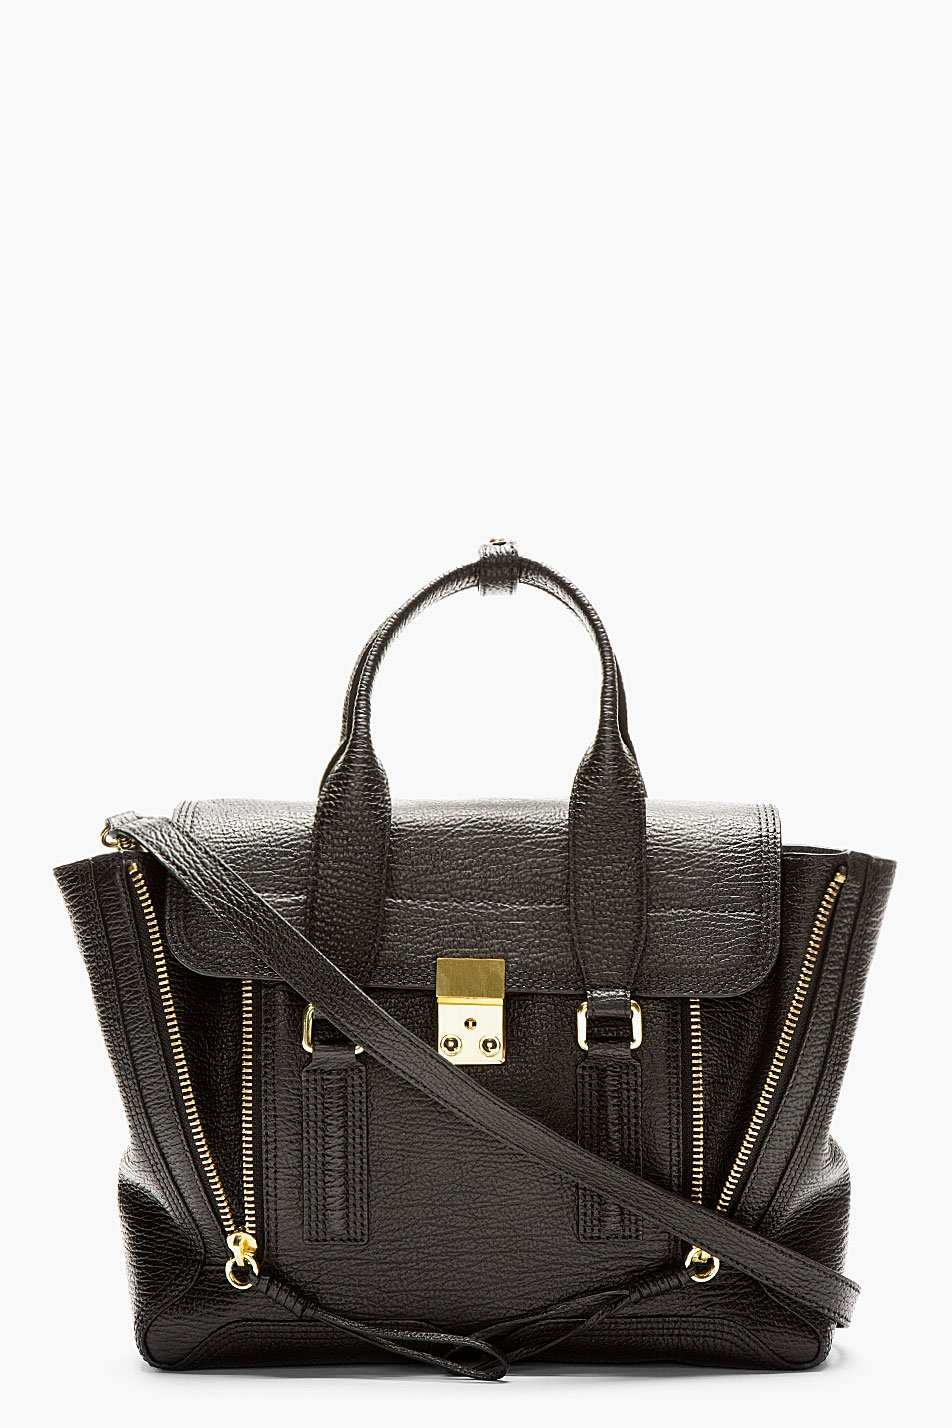 3.1 phillip lim black textured leather pashli medium satchel